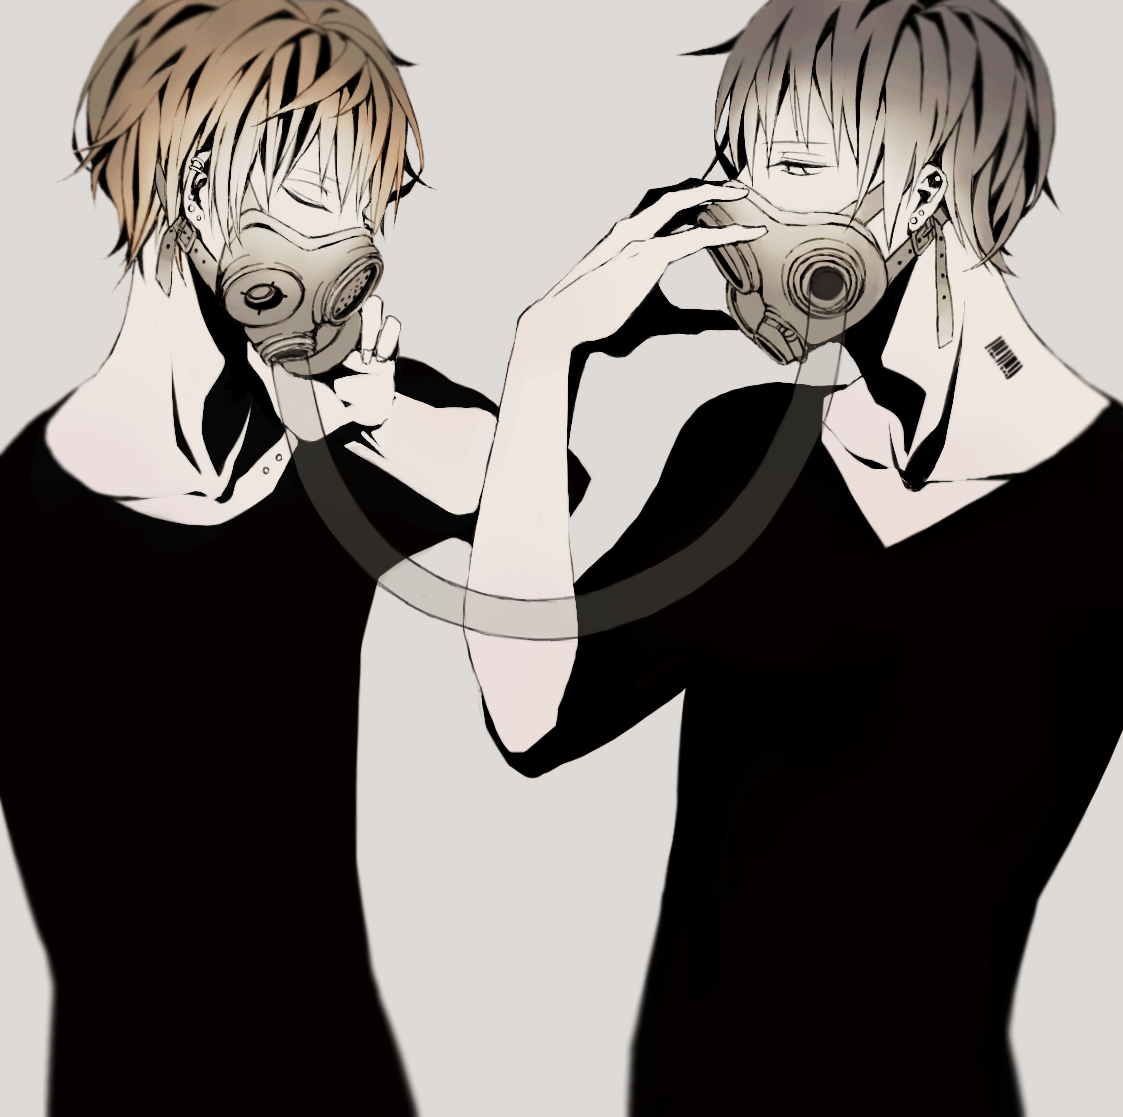 Chicos sexys con Gas Mask <3 Pixiv.Id.2787621.full.1437417